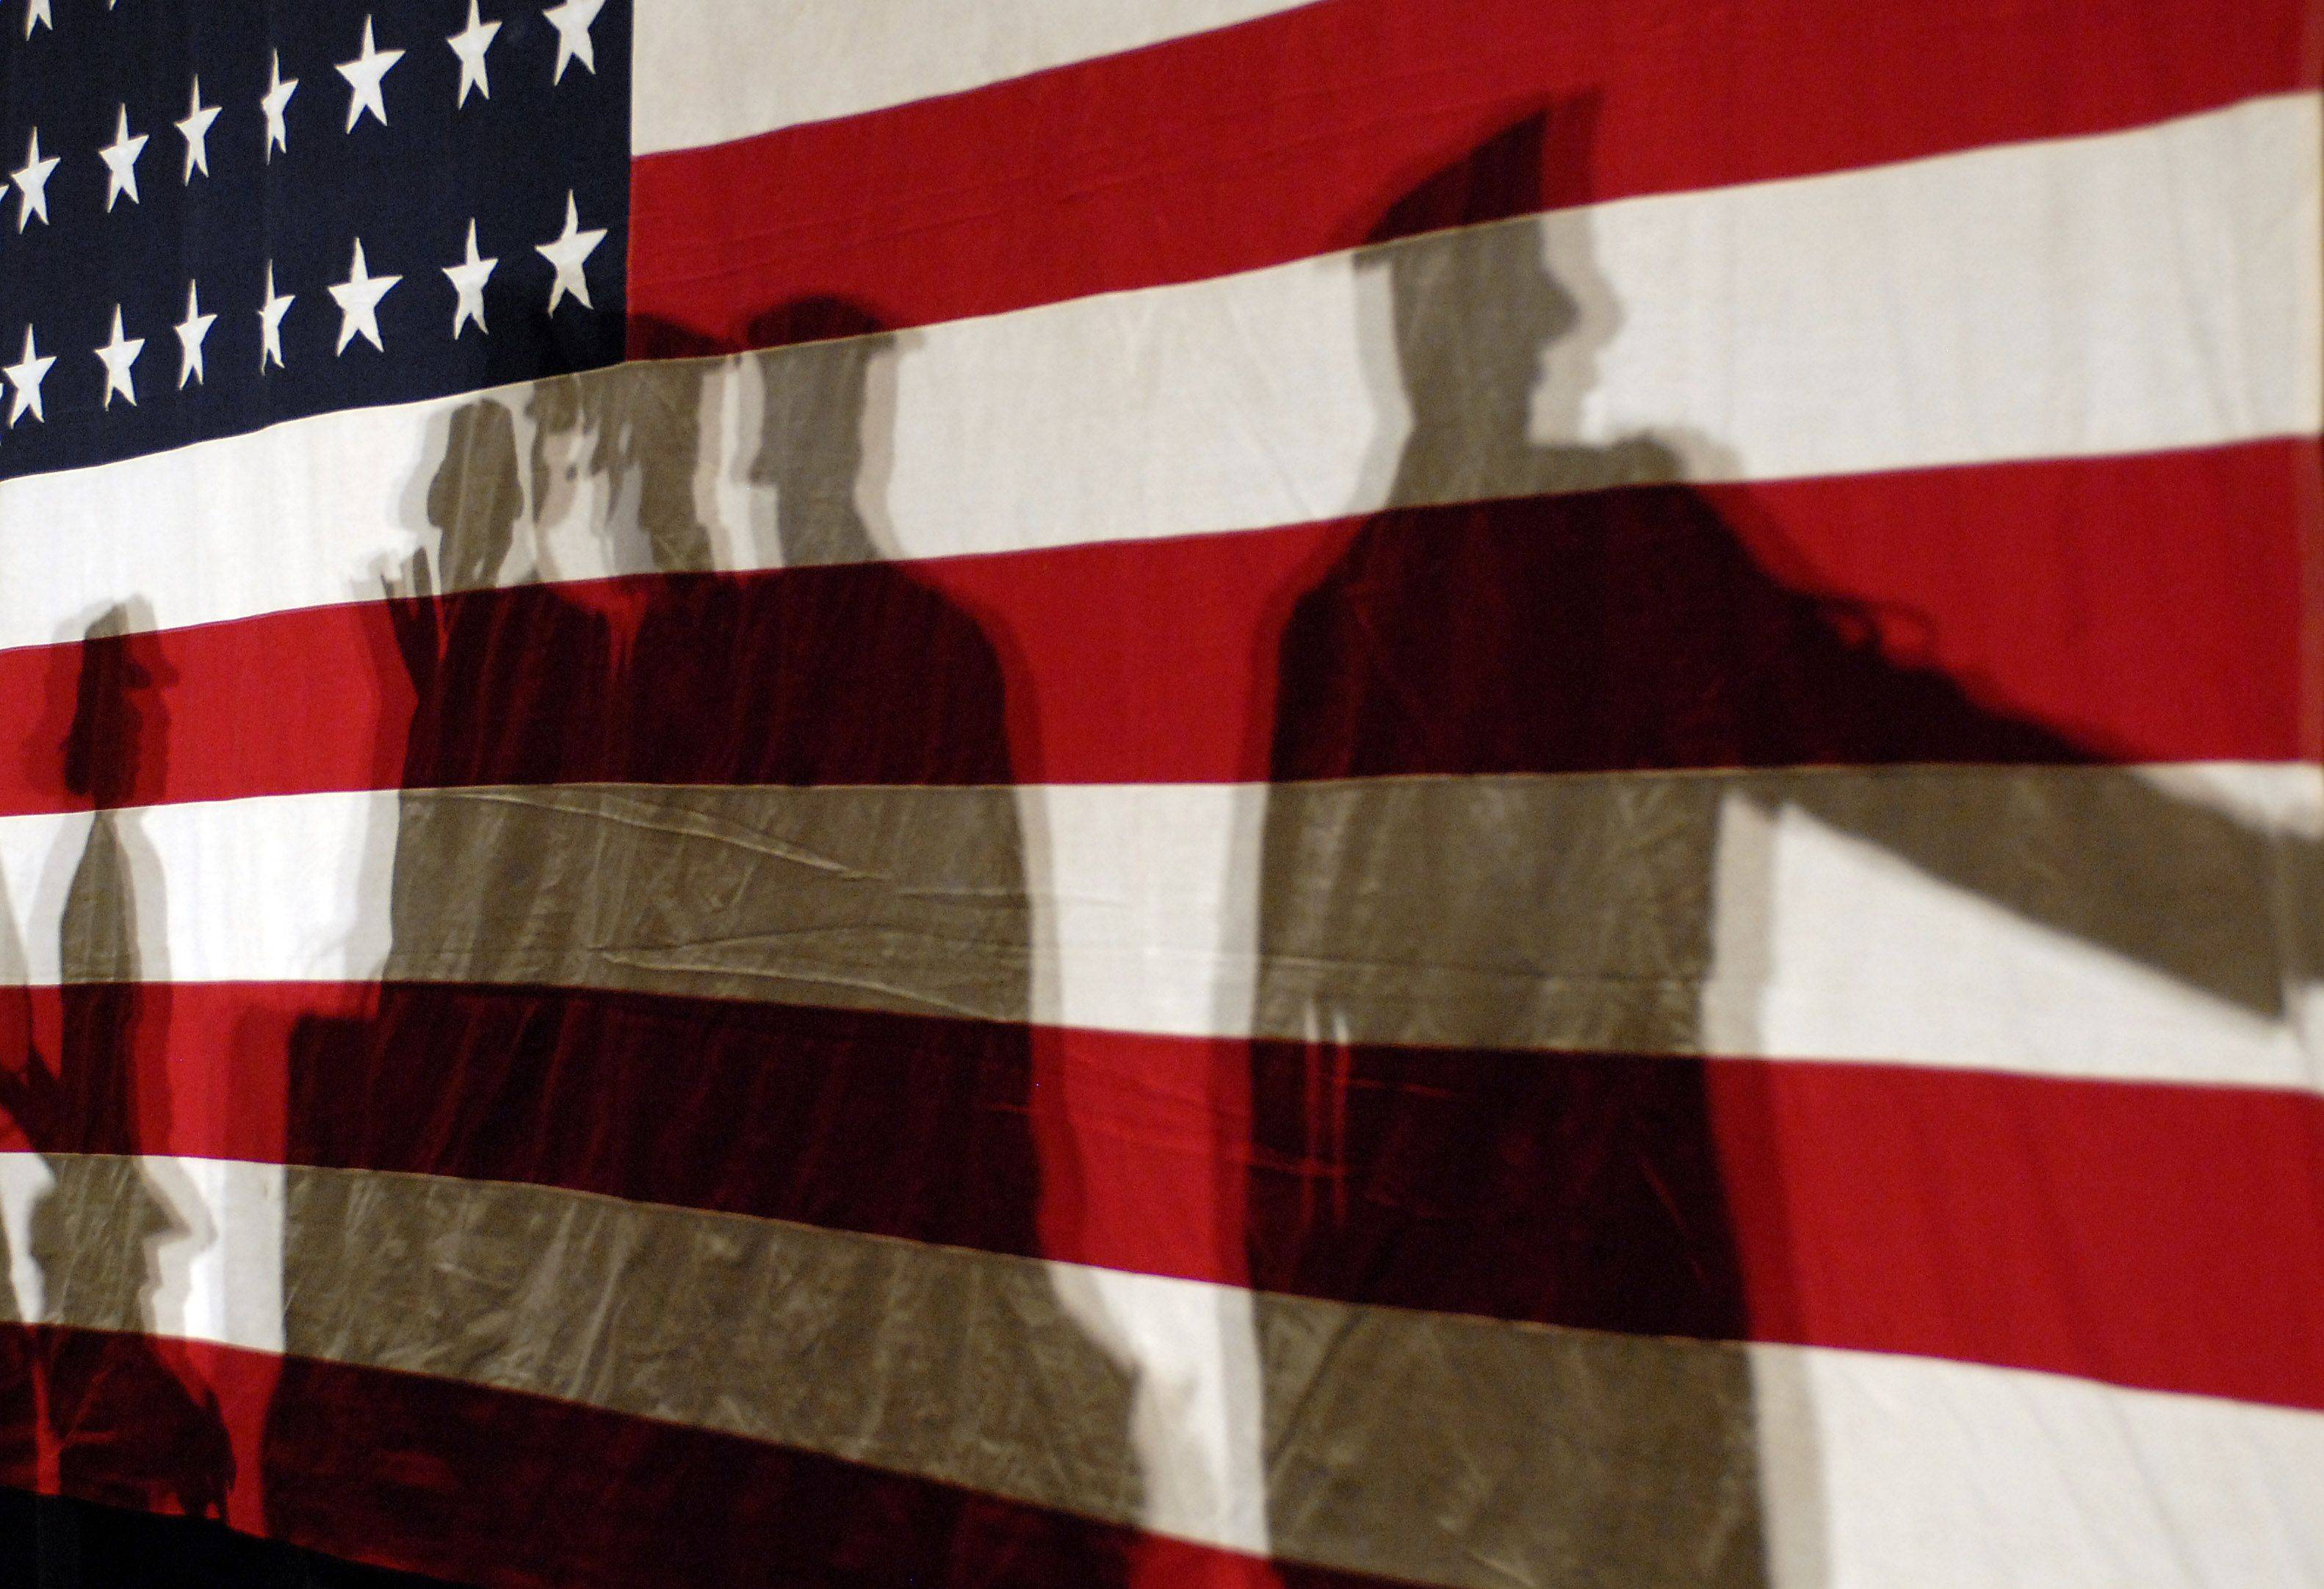 Shadows of the Zion-Benton ROTC soldiers highlight a WWII 48 star flag which was used as a backdrop at Mark Kirk's campaign headquarters on election night.